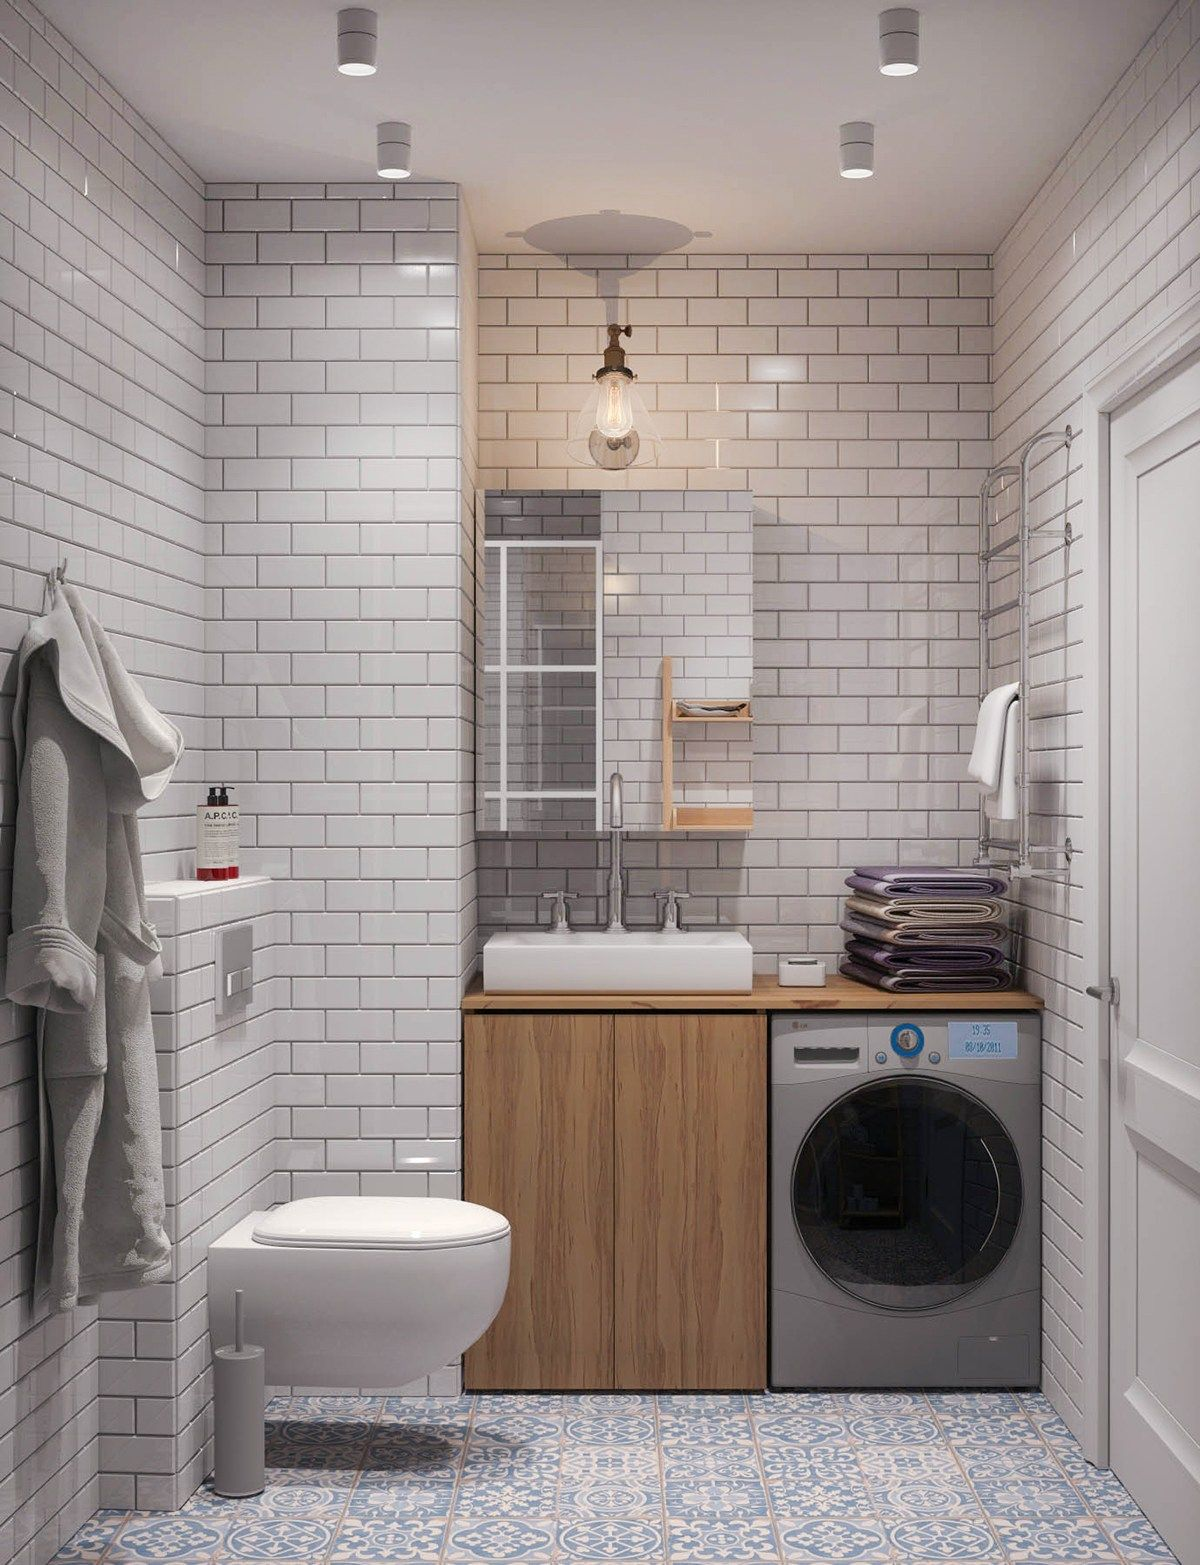 Fabulous Small Bathroom Design With White Color.